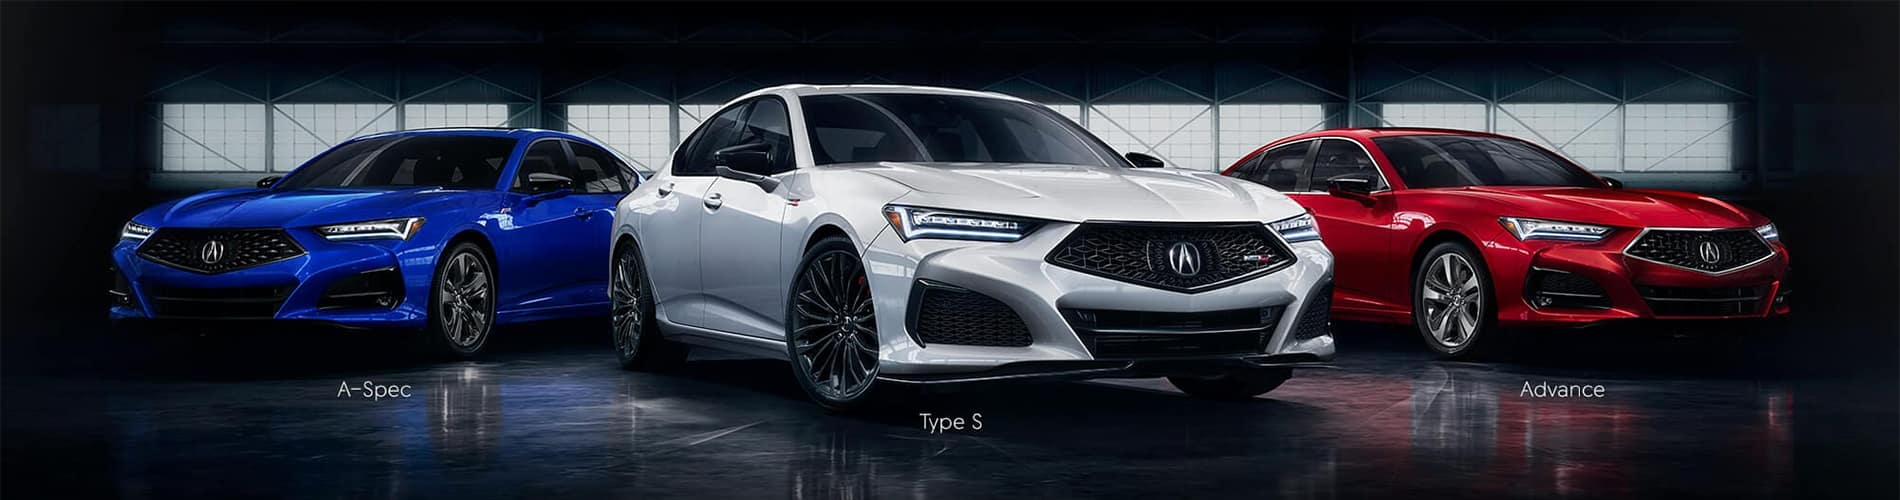 2021 Acura TLX Different Trim Levels